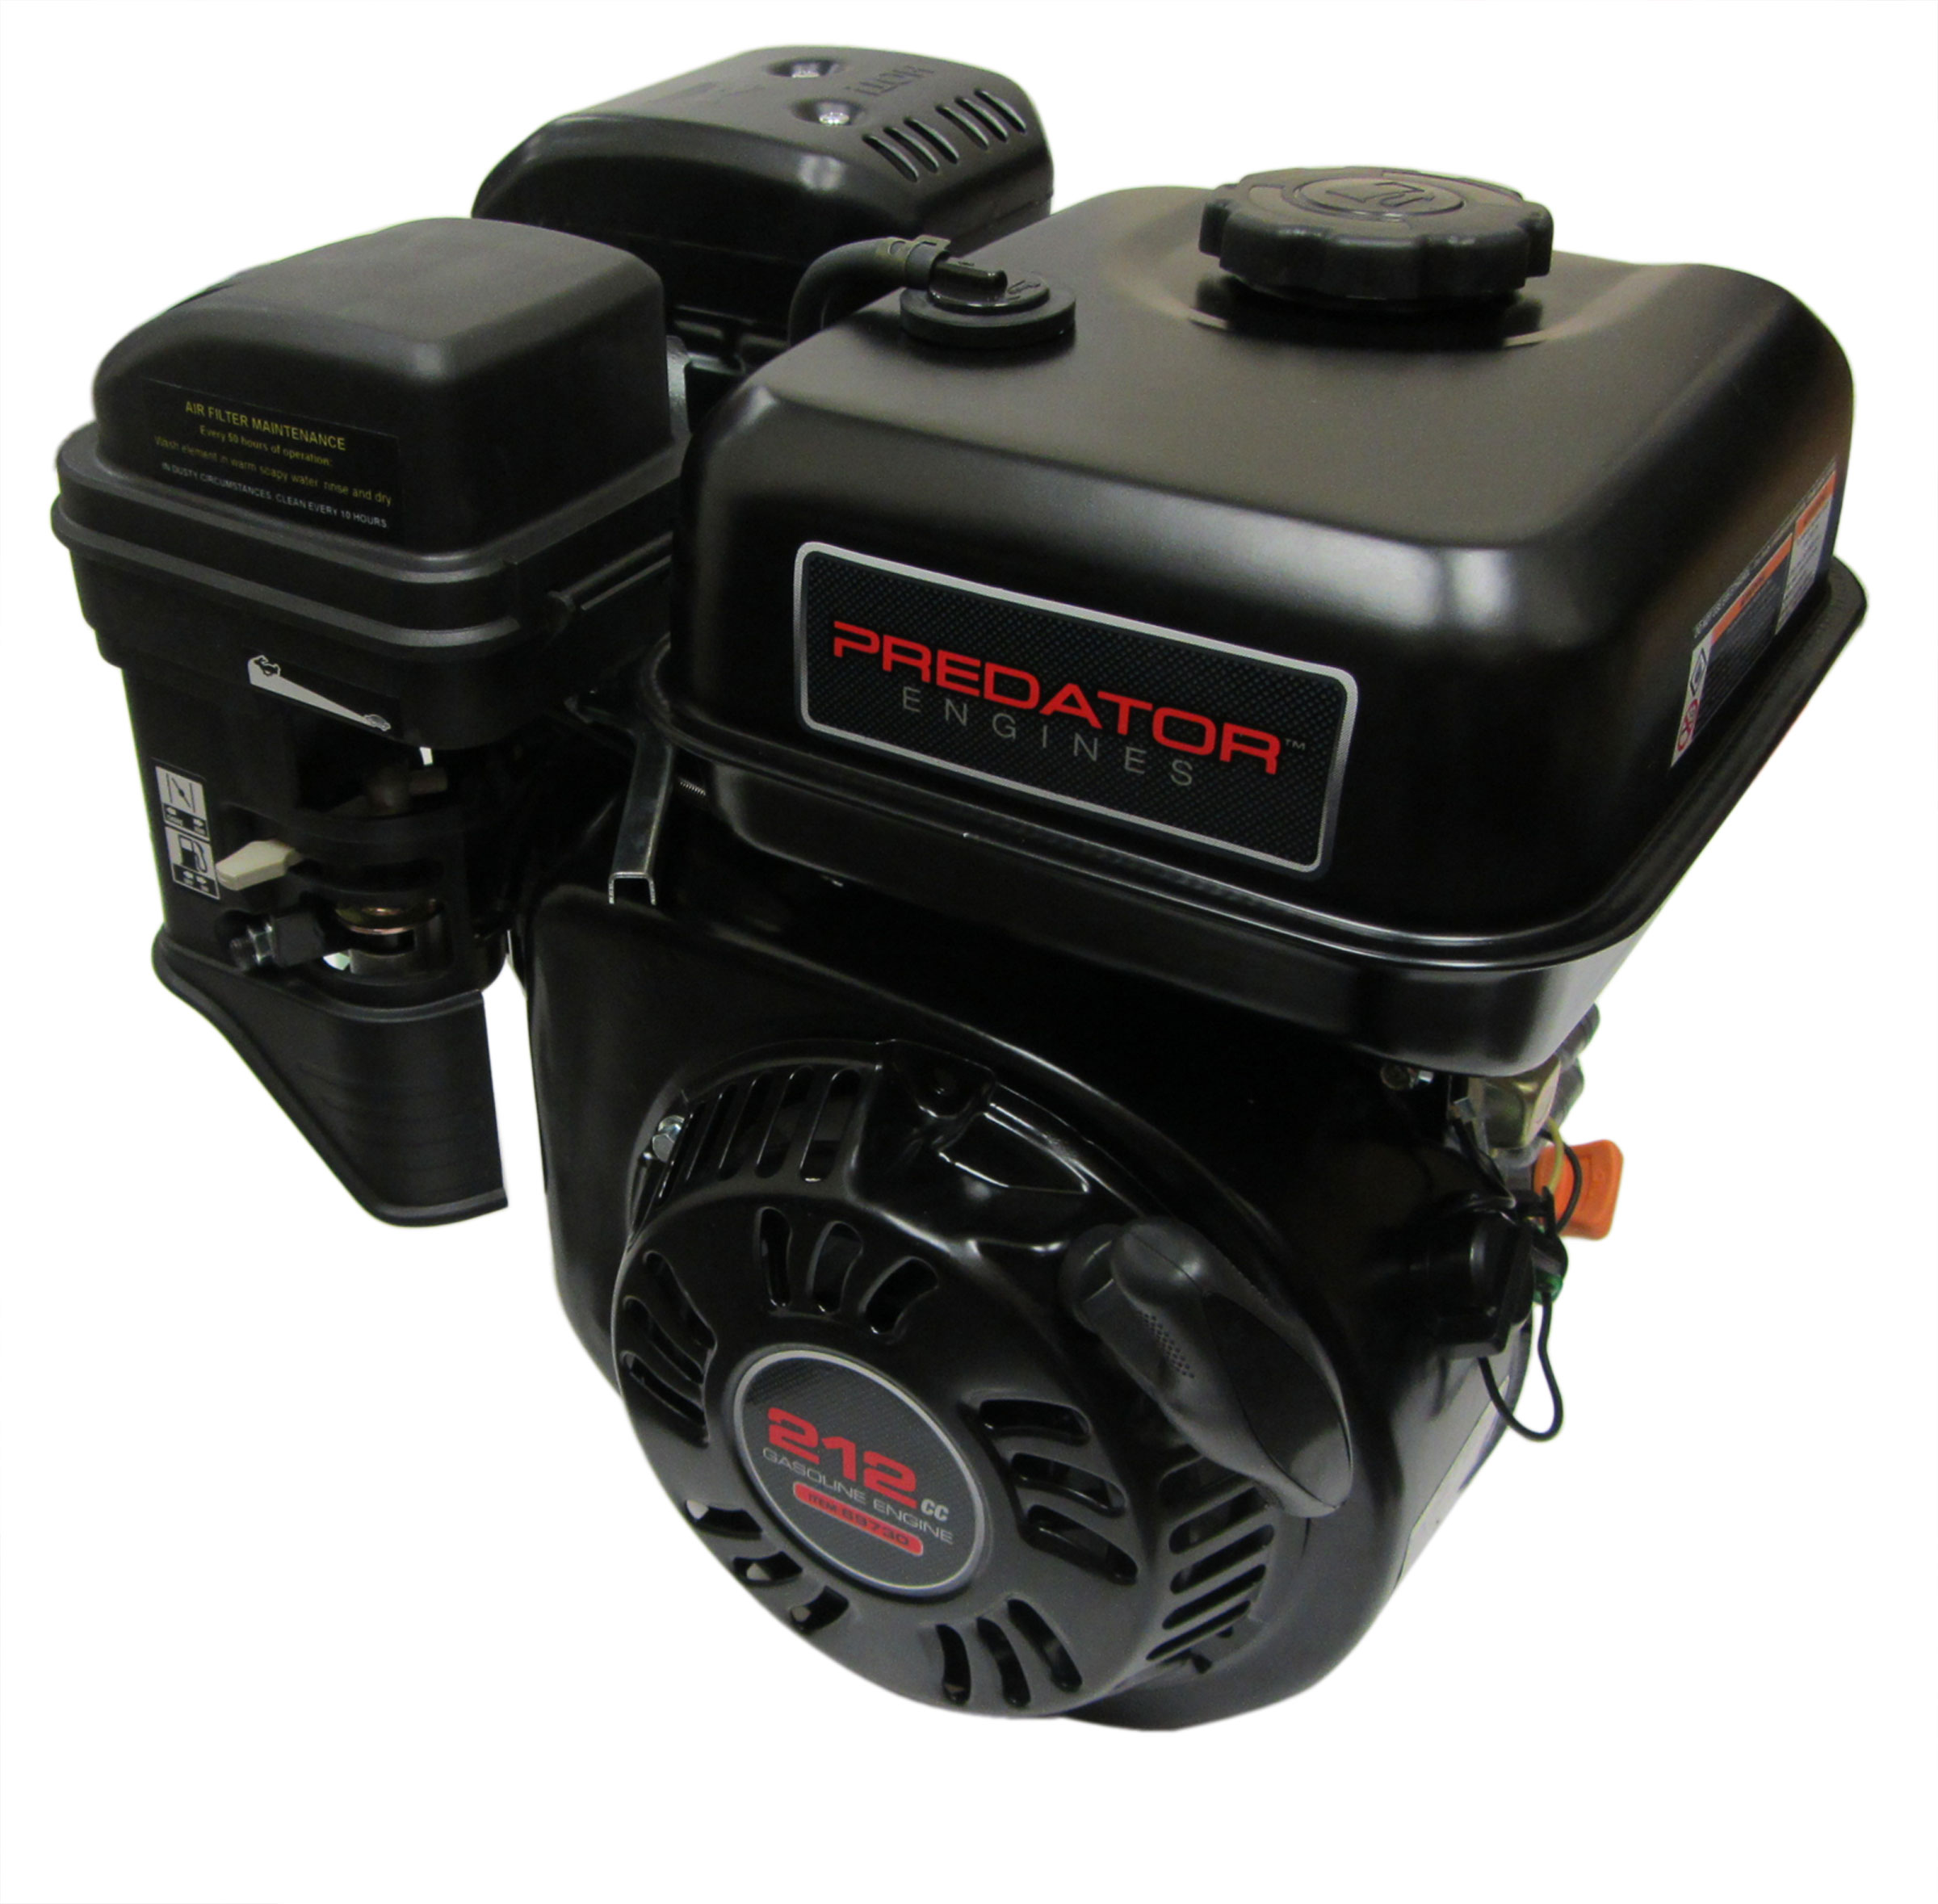 Harbor Freight 6.5 HP Engine